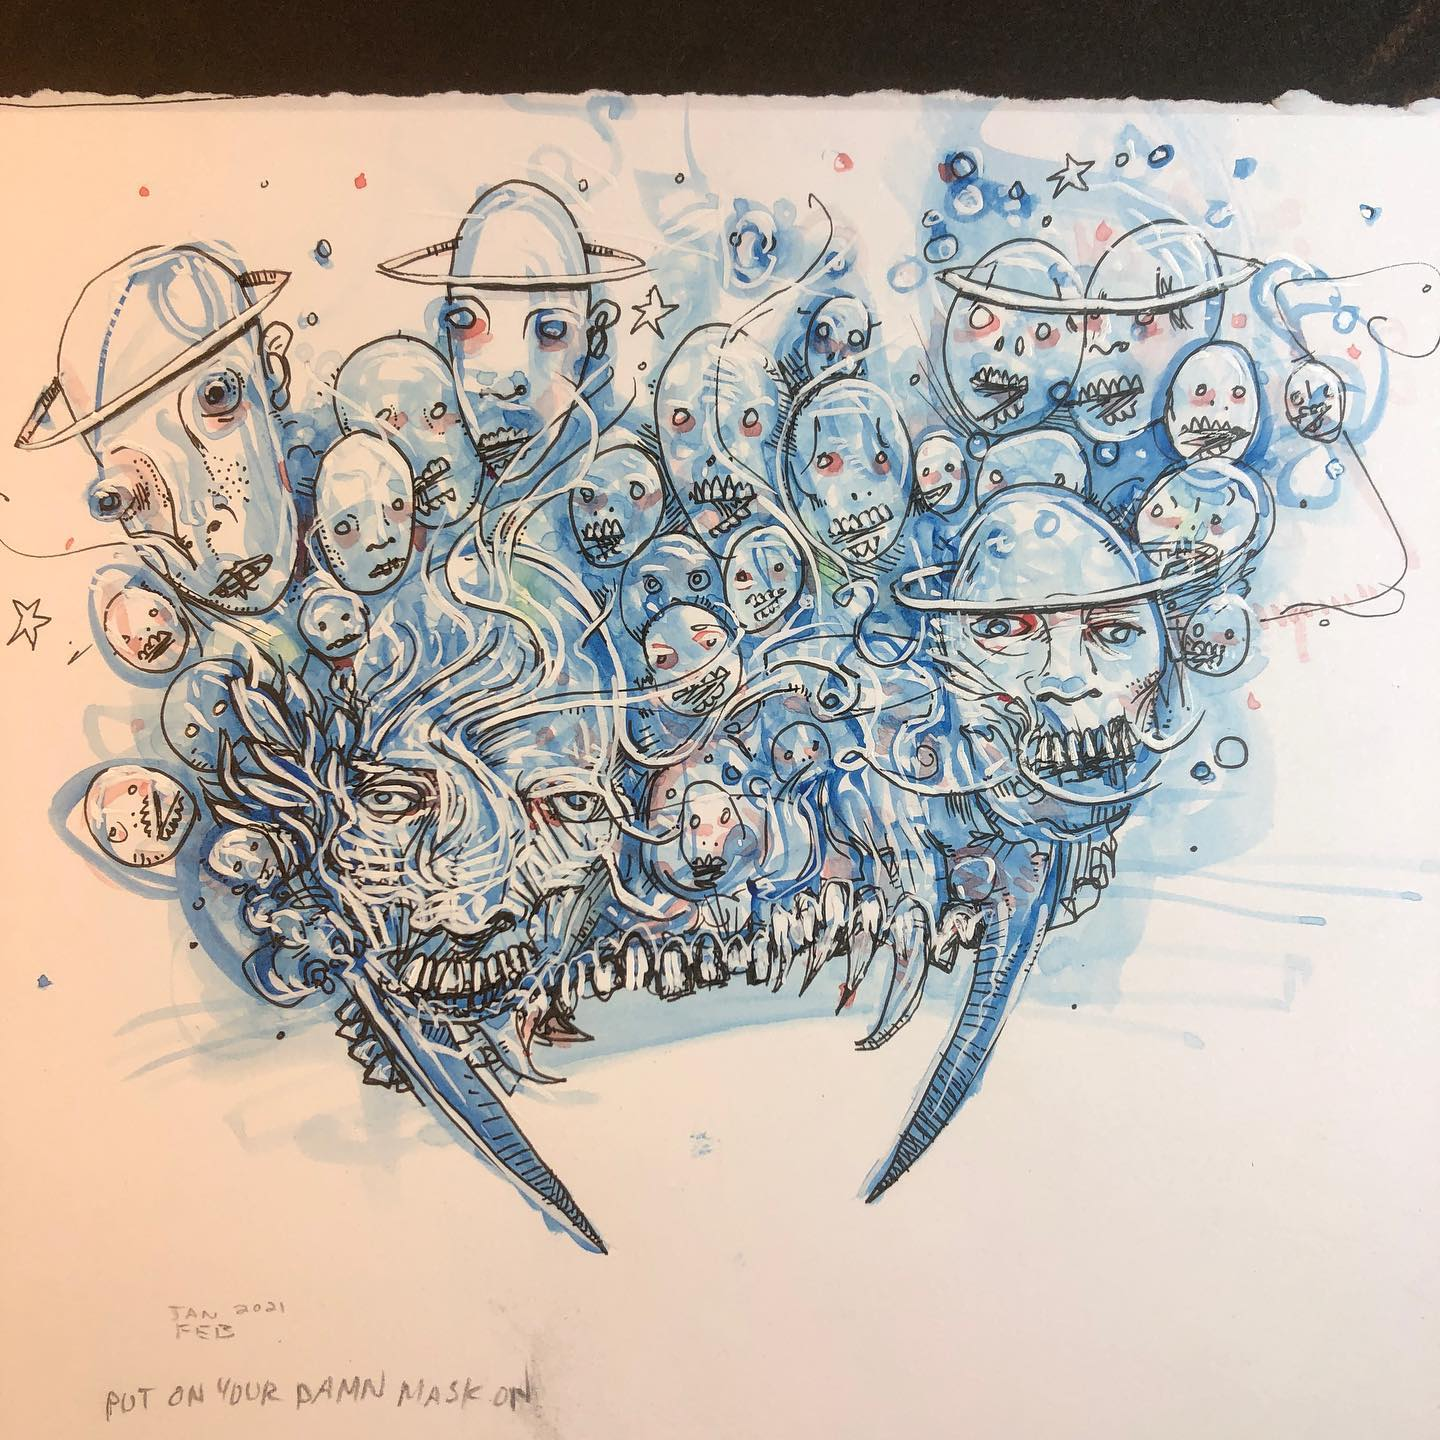 Put On Your Damn Mask On - watercolor and ink drawing of skulls breathing